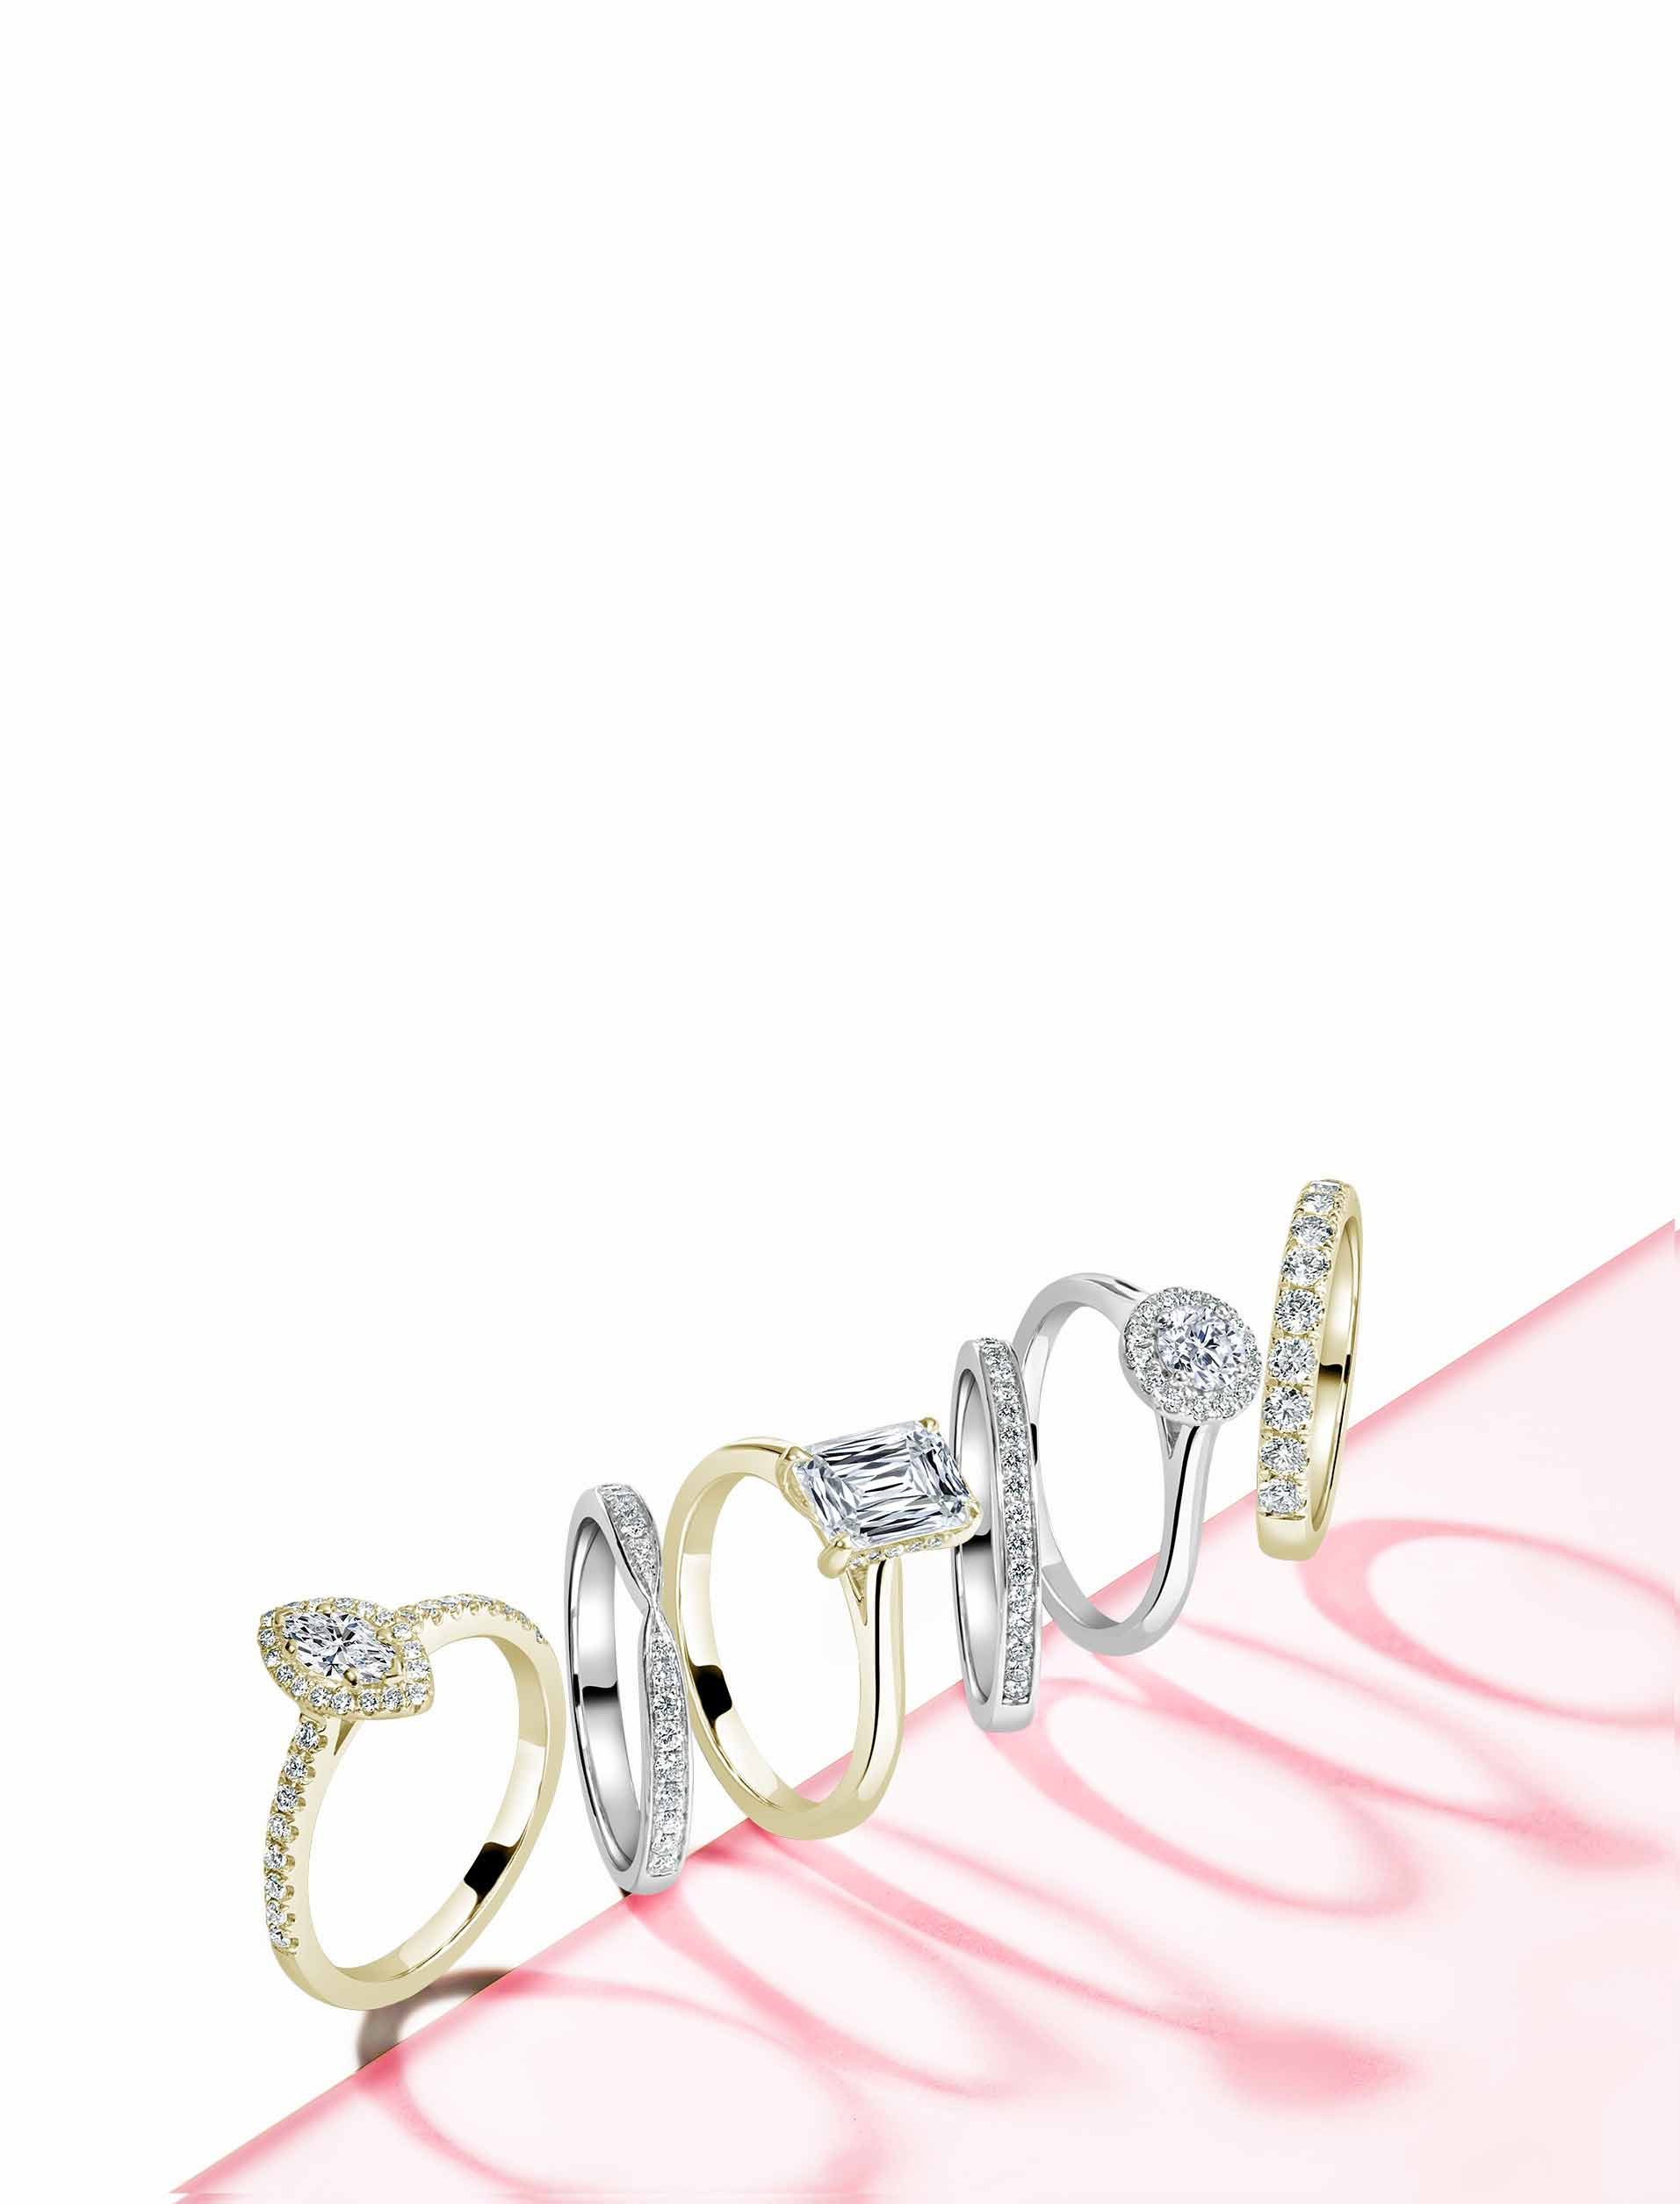 Yellow Gold Engagement Rings - Steven Stone